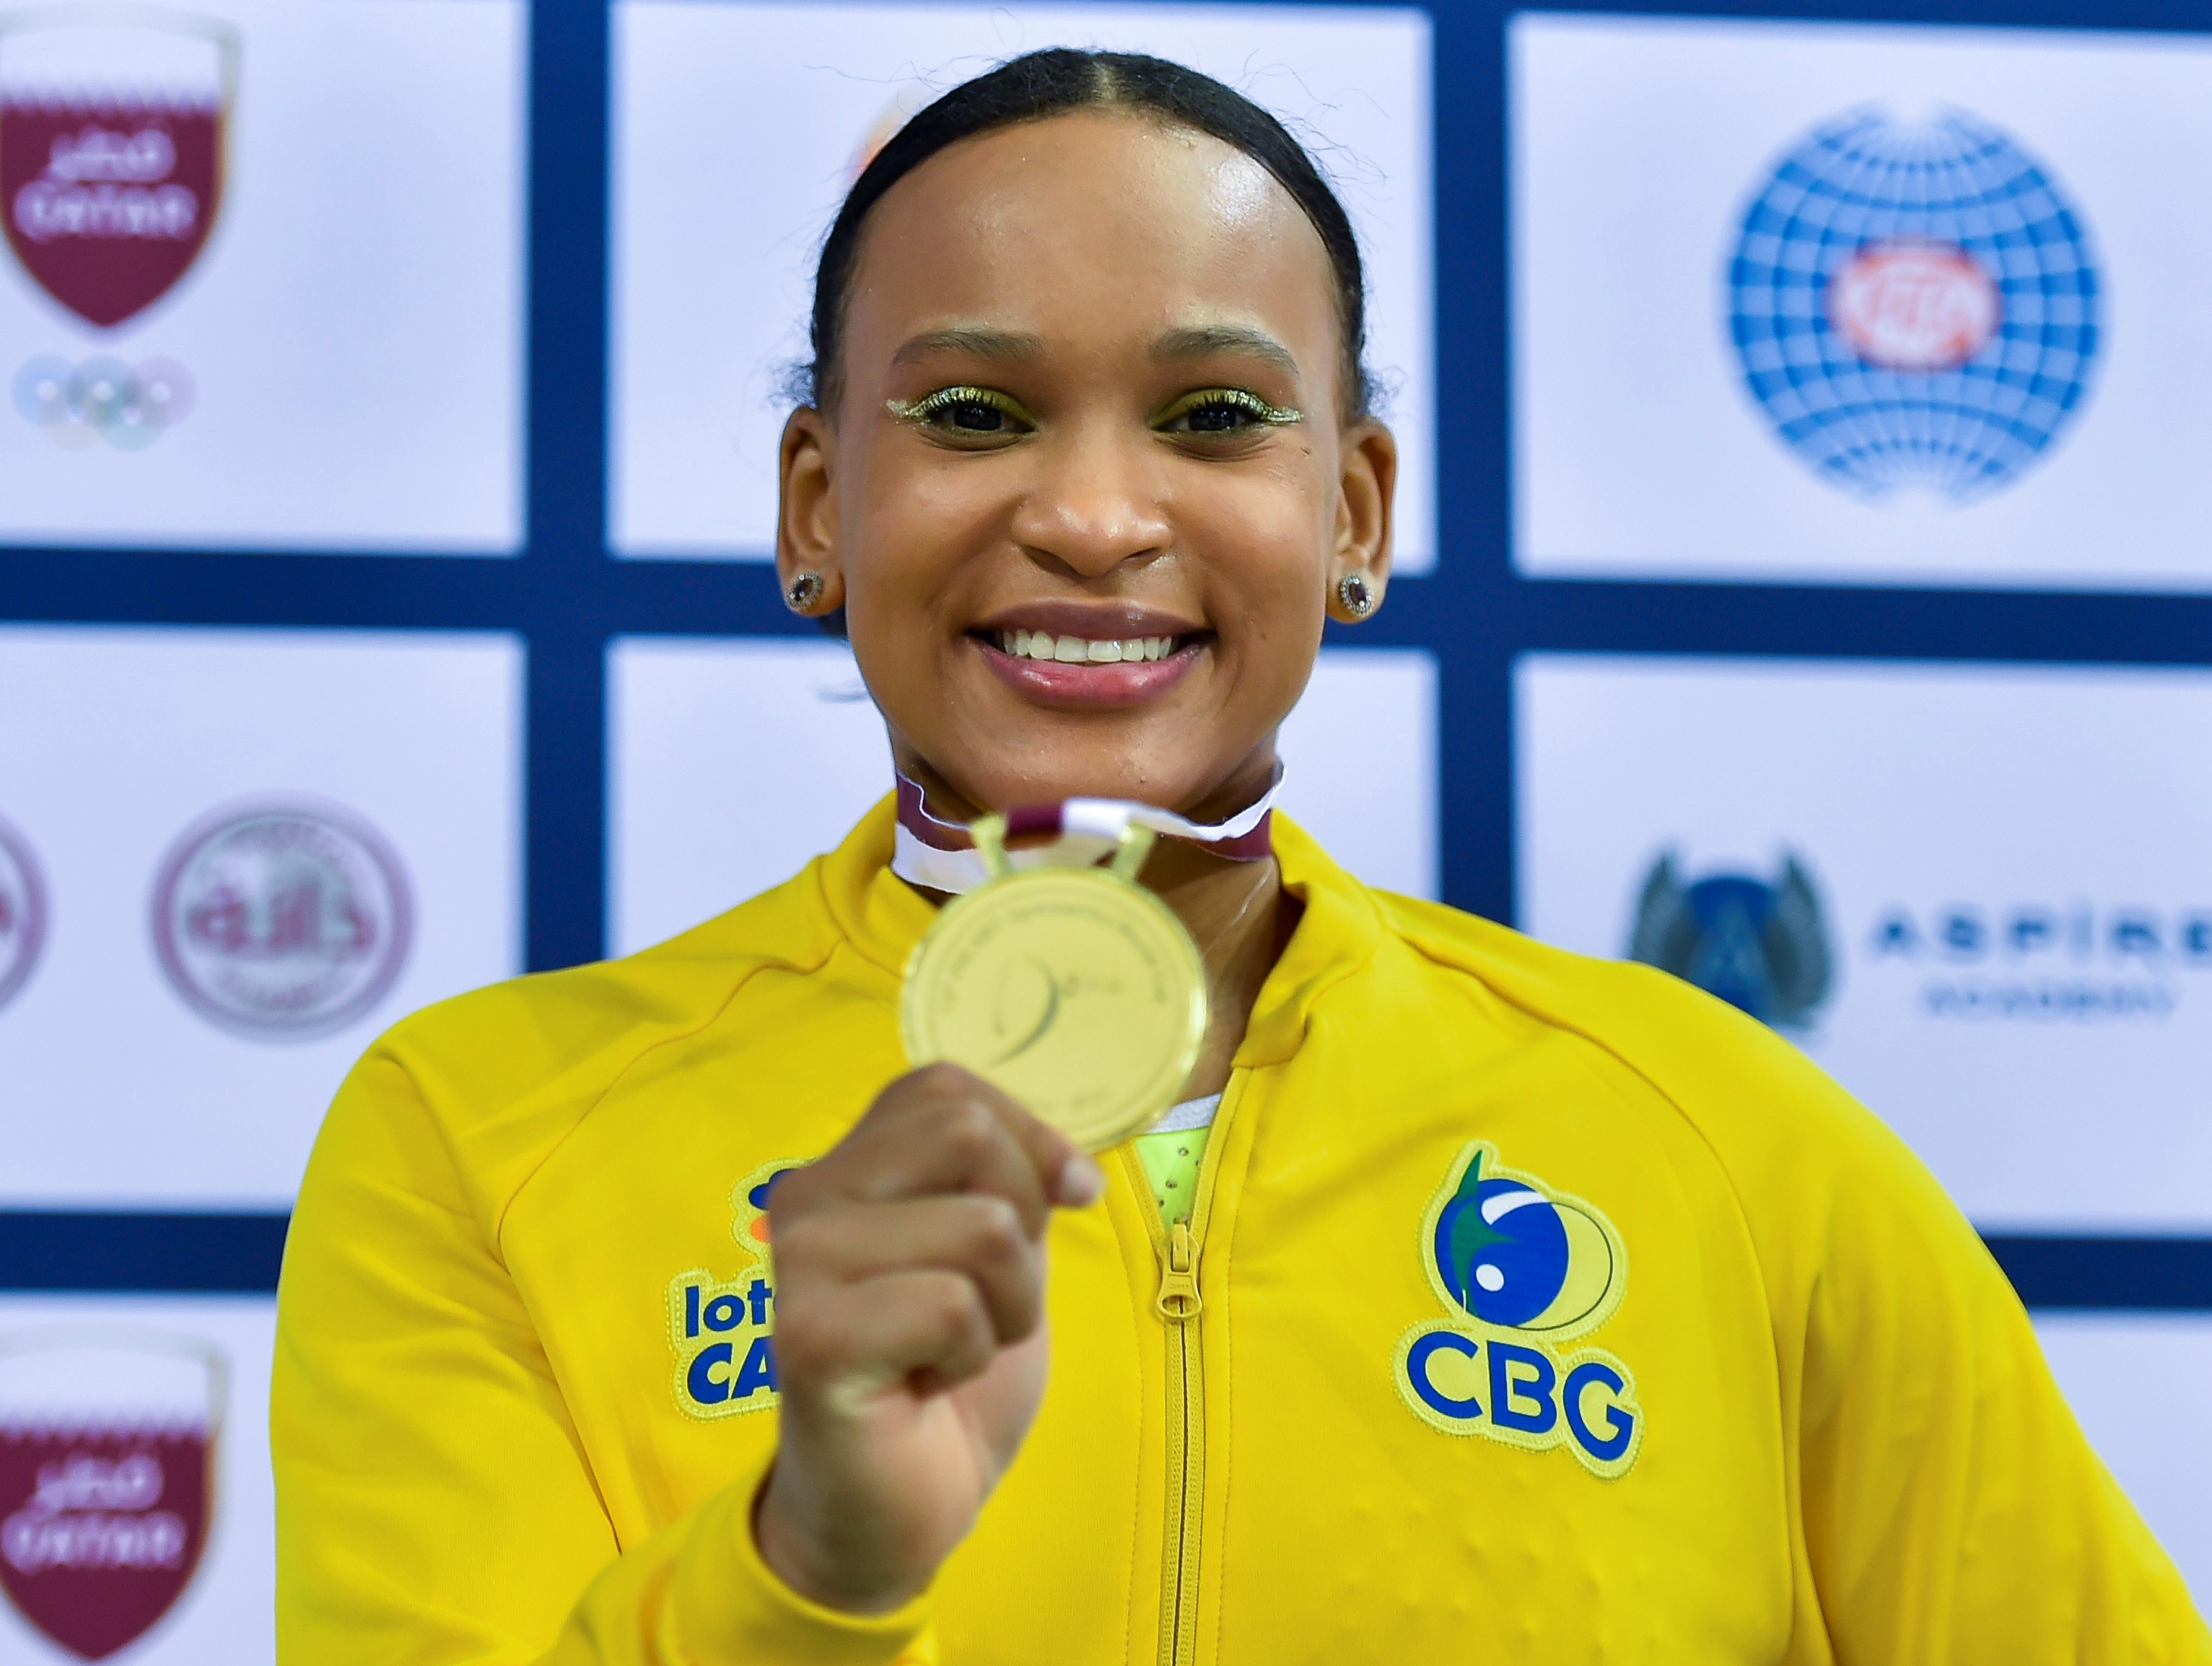 Rebeca Andrade of Brazil poses during the awarding ceremony for the Women's Uneven Bars Final at the 13th FIG Artistic Gymnastics World Cup in Doha, capital of Qatar, on June 25, 2021.